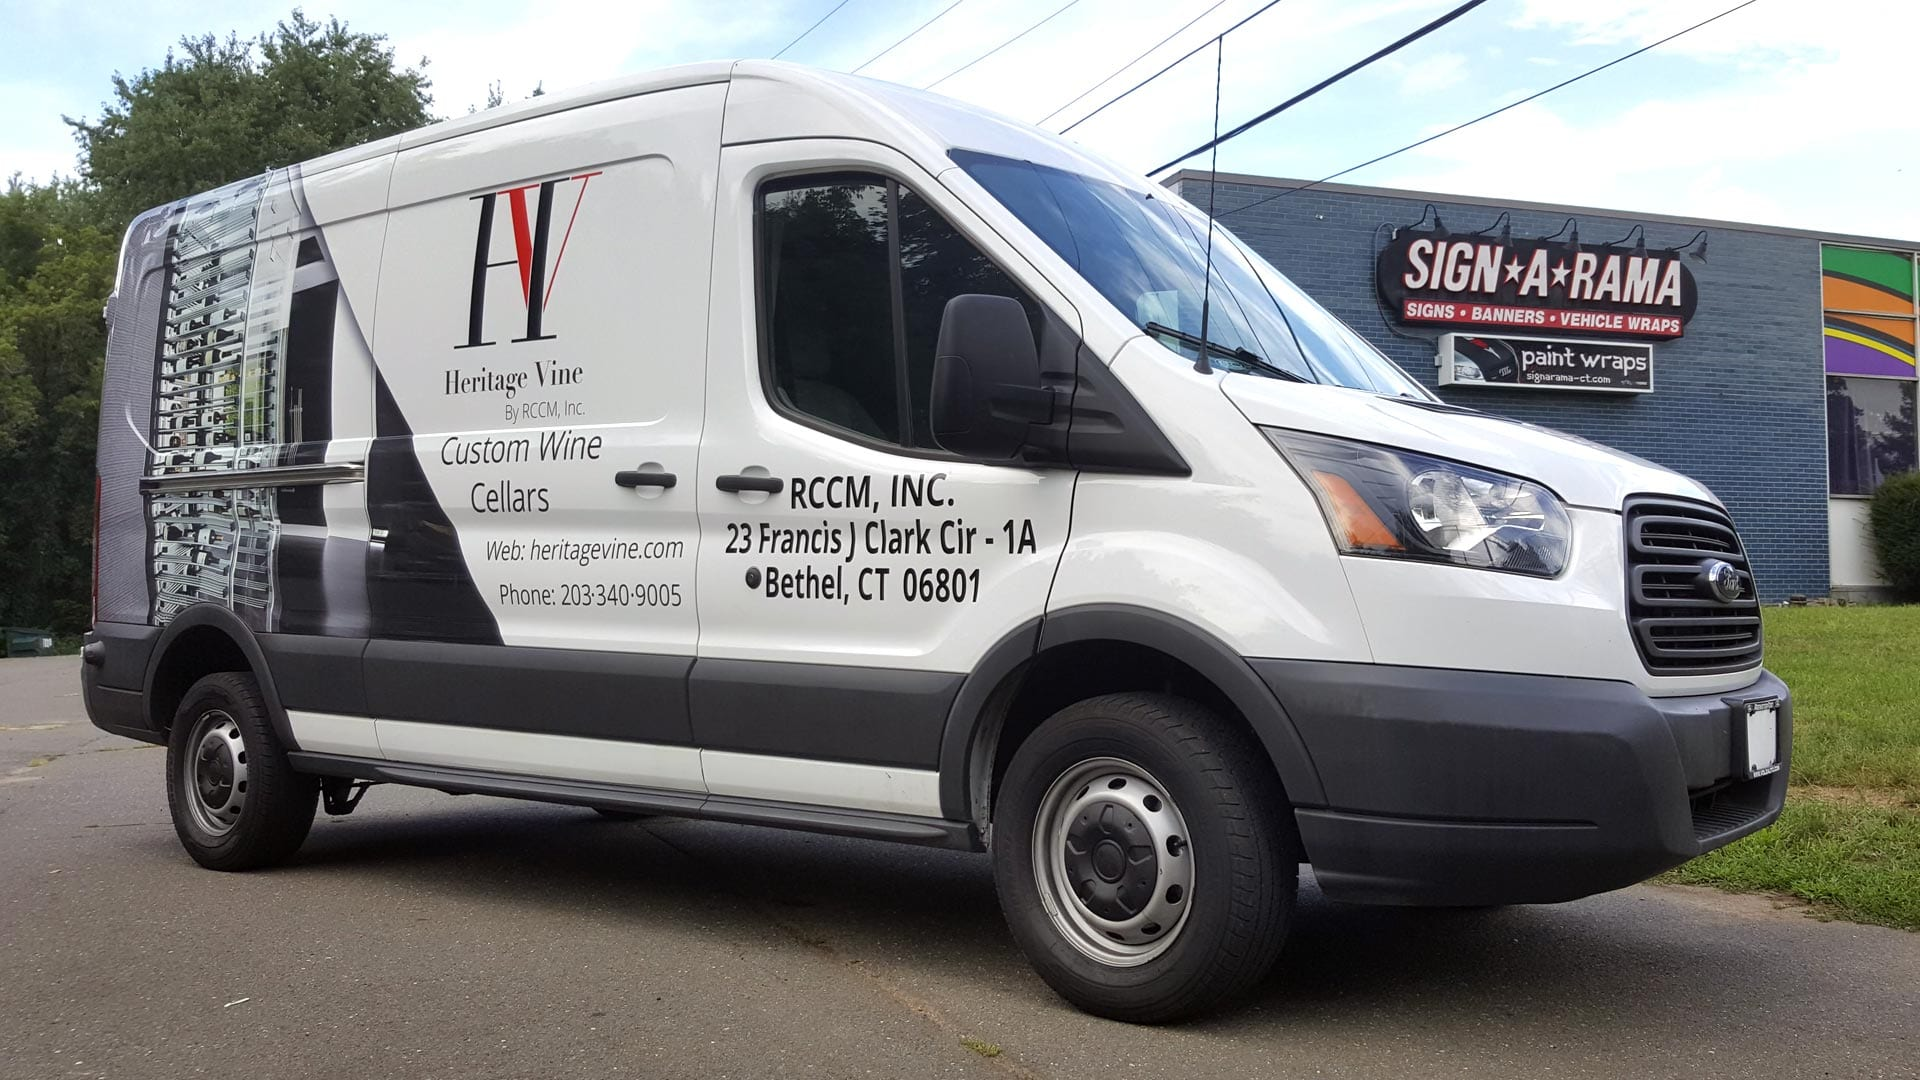 Cargo Van Wraps Amp Lettering In Greater Danbury Amp All Ct